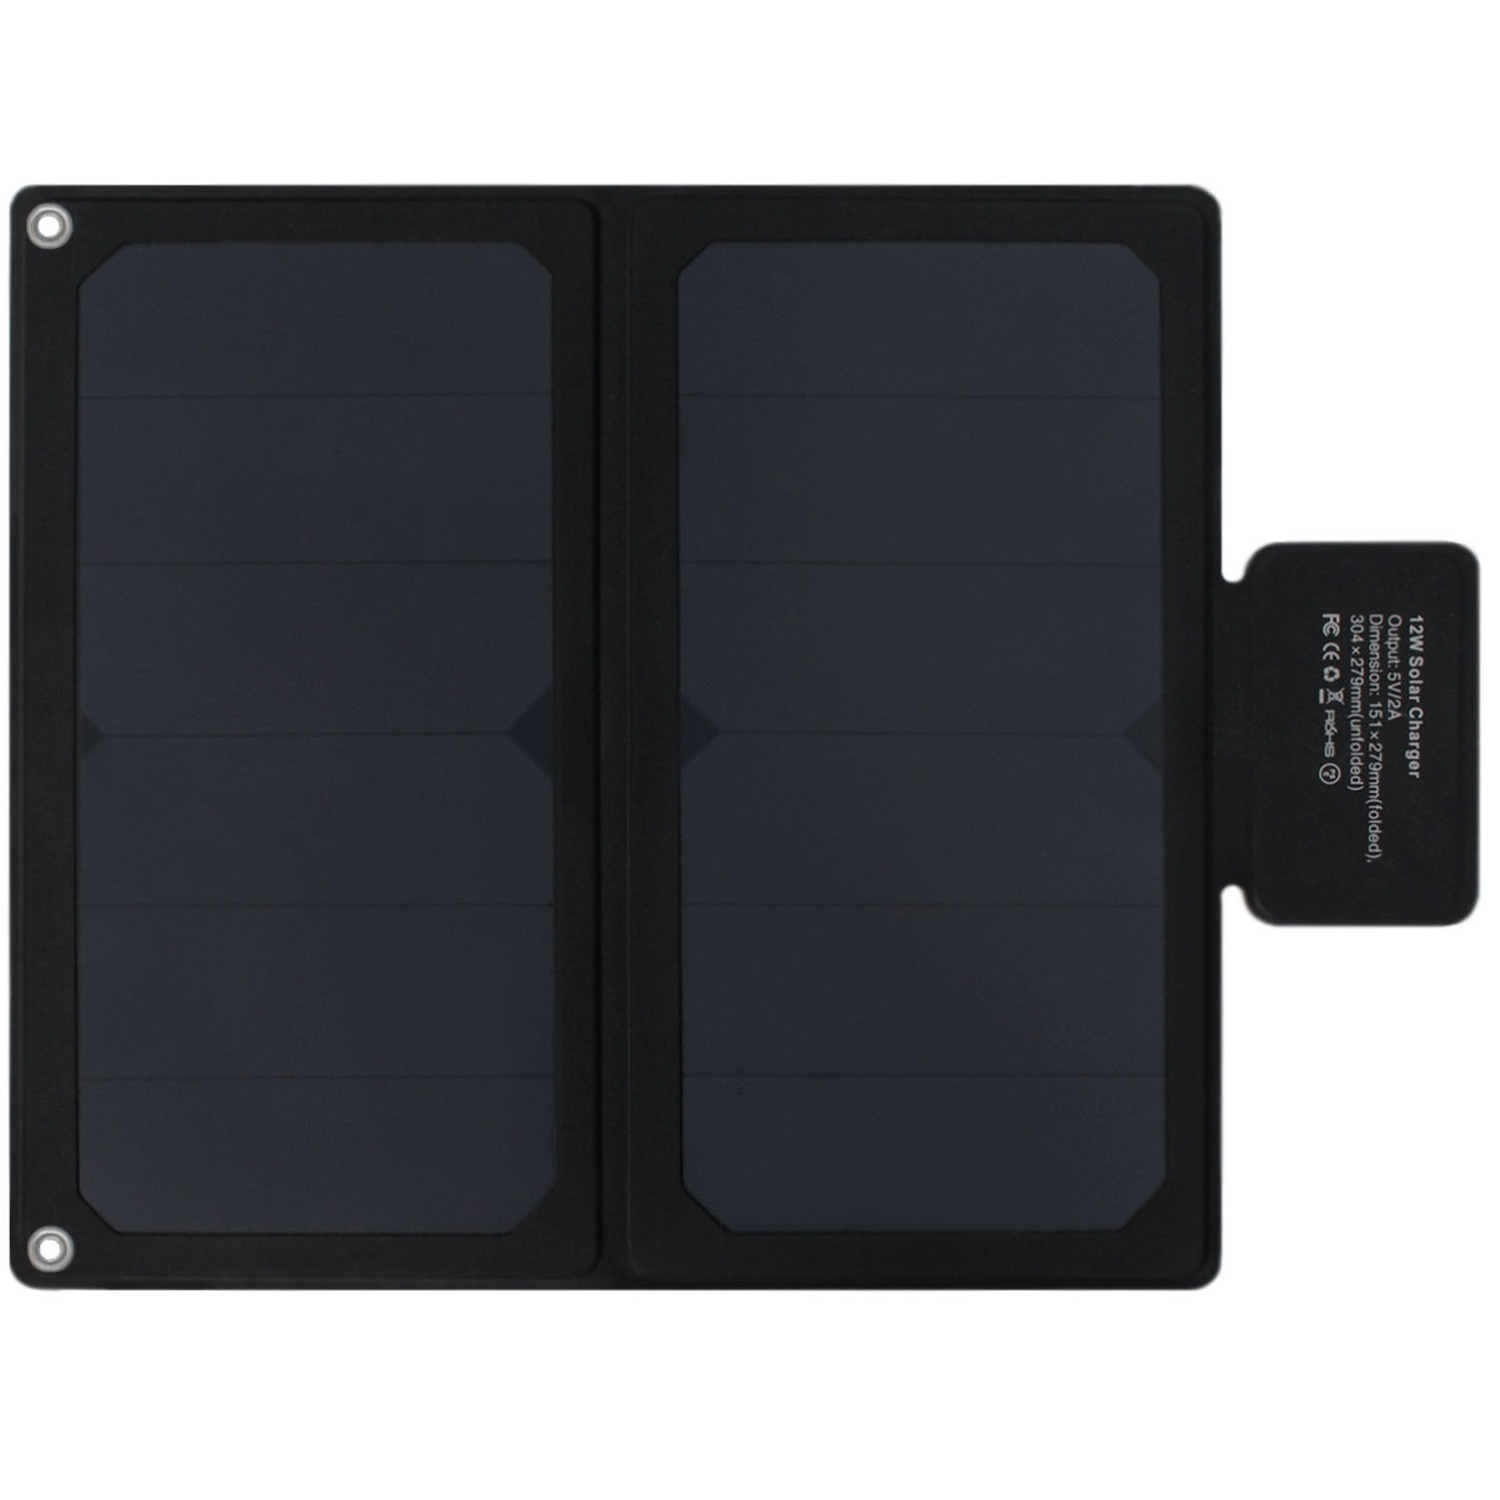 12W Fold up Solar charger with 5V USB Port for iPhone, iPad, iPod